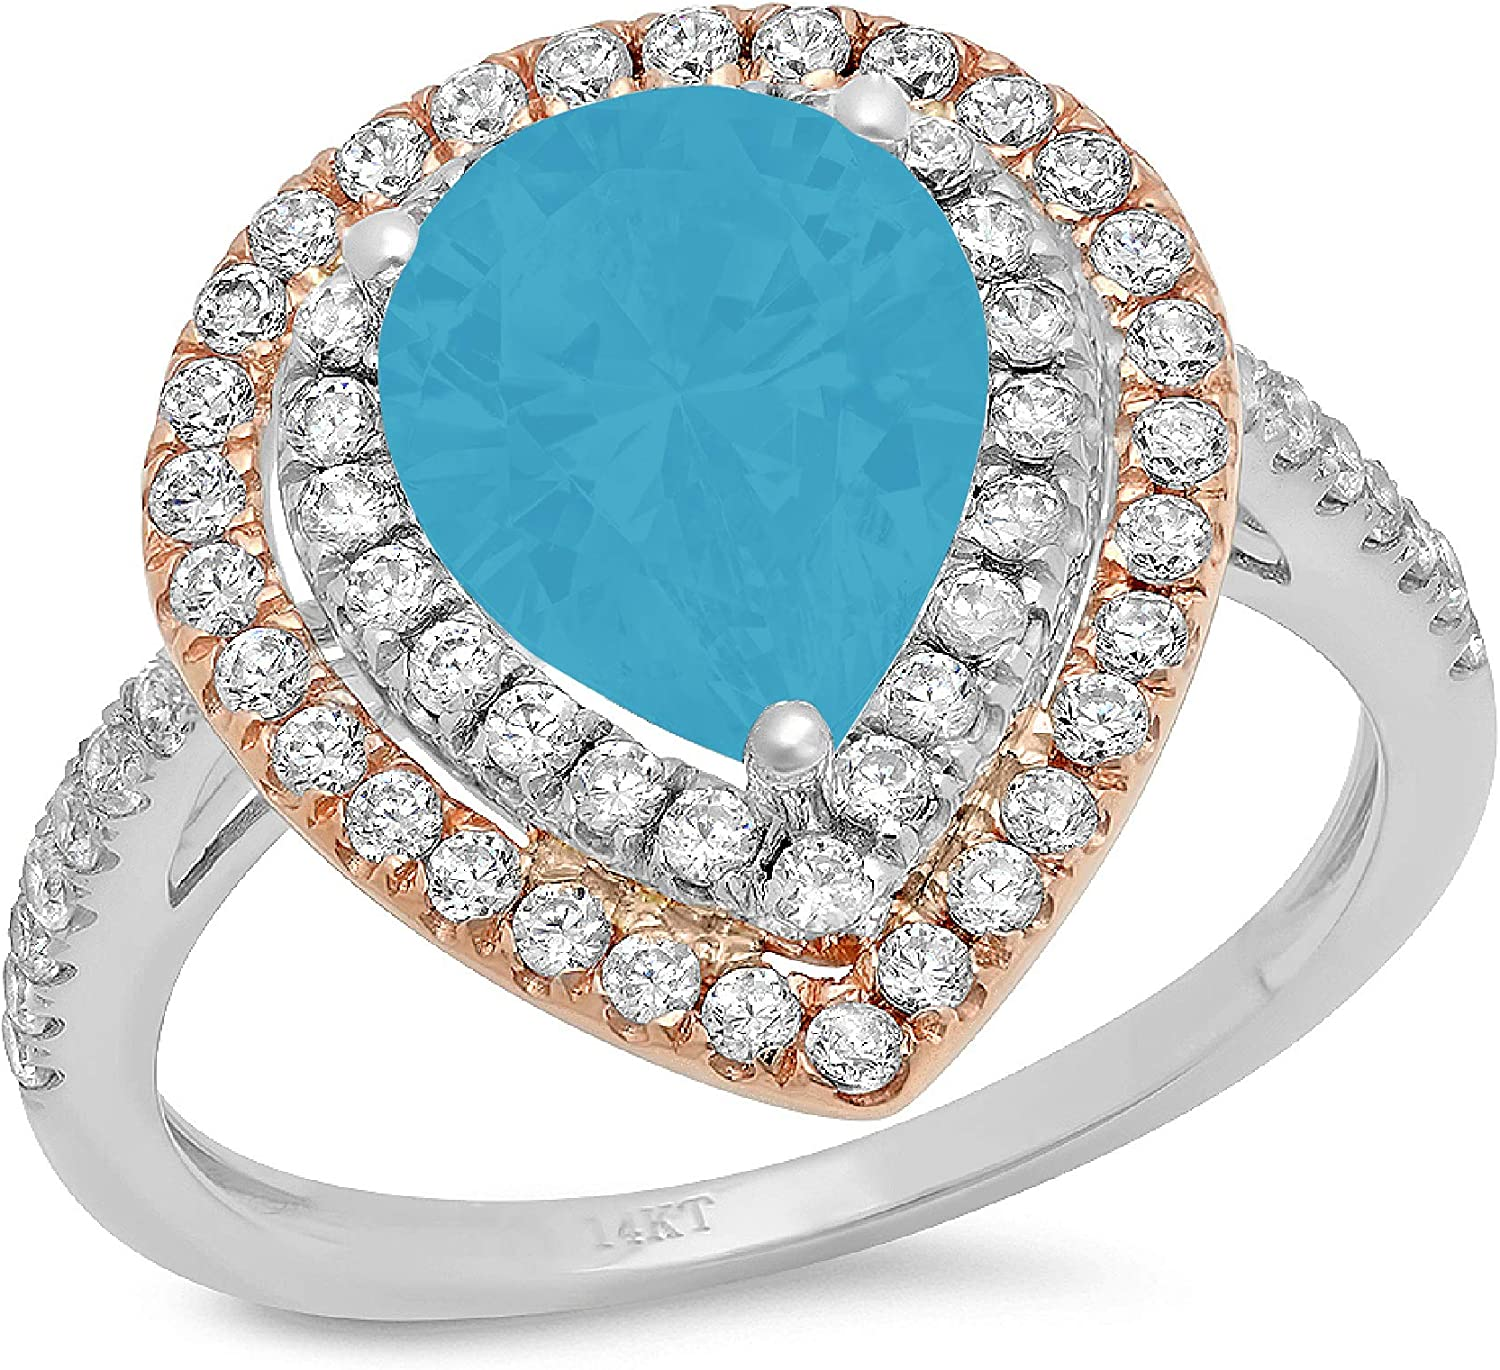 2.6ct Pear Cut Double Halo Solitaire with Accent Flawless Ideal VVS1 Simulated Blue Turquoise CZ Engagement Promise Statement Anniversary Bridal Wedding Designer Ring Solid 14k 2 tone Gold